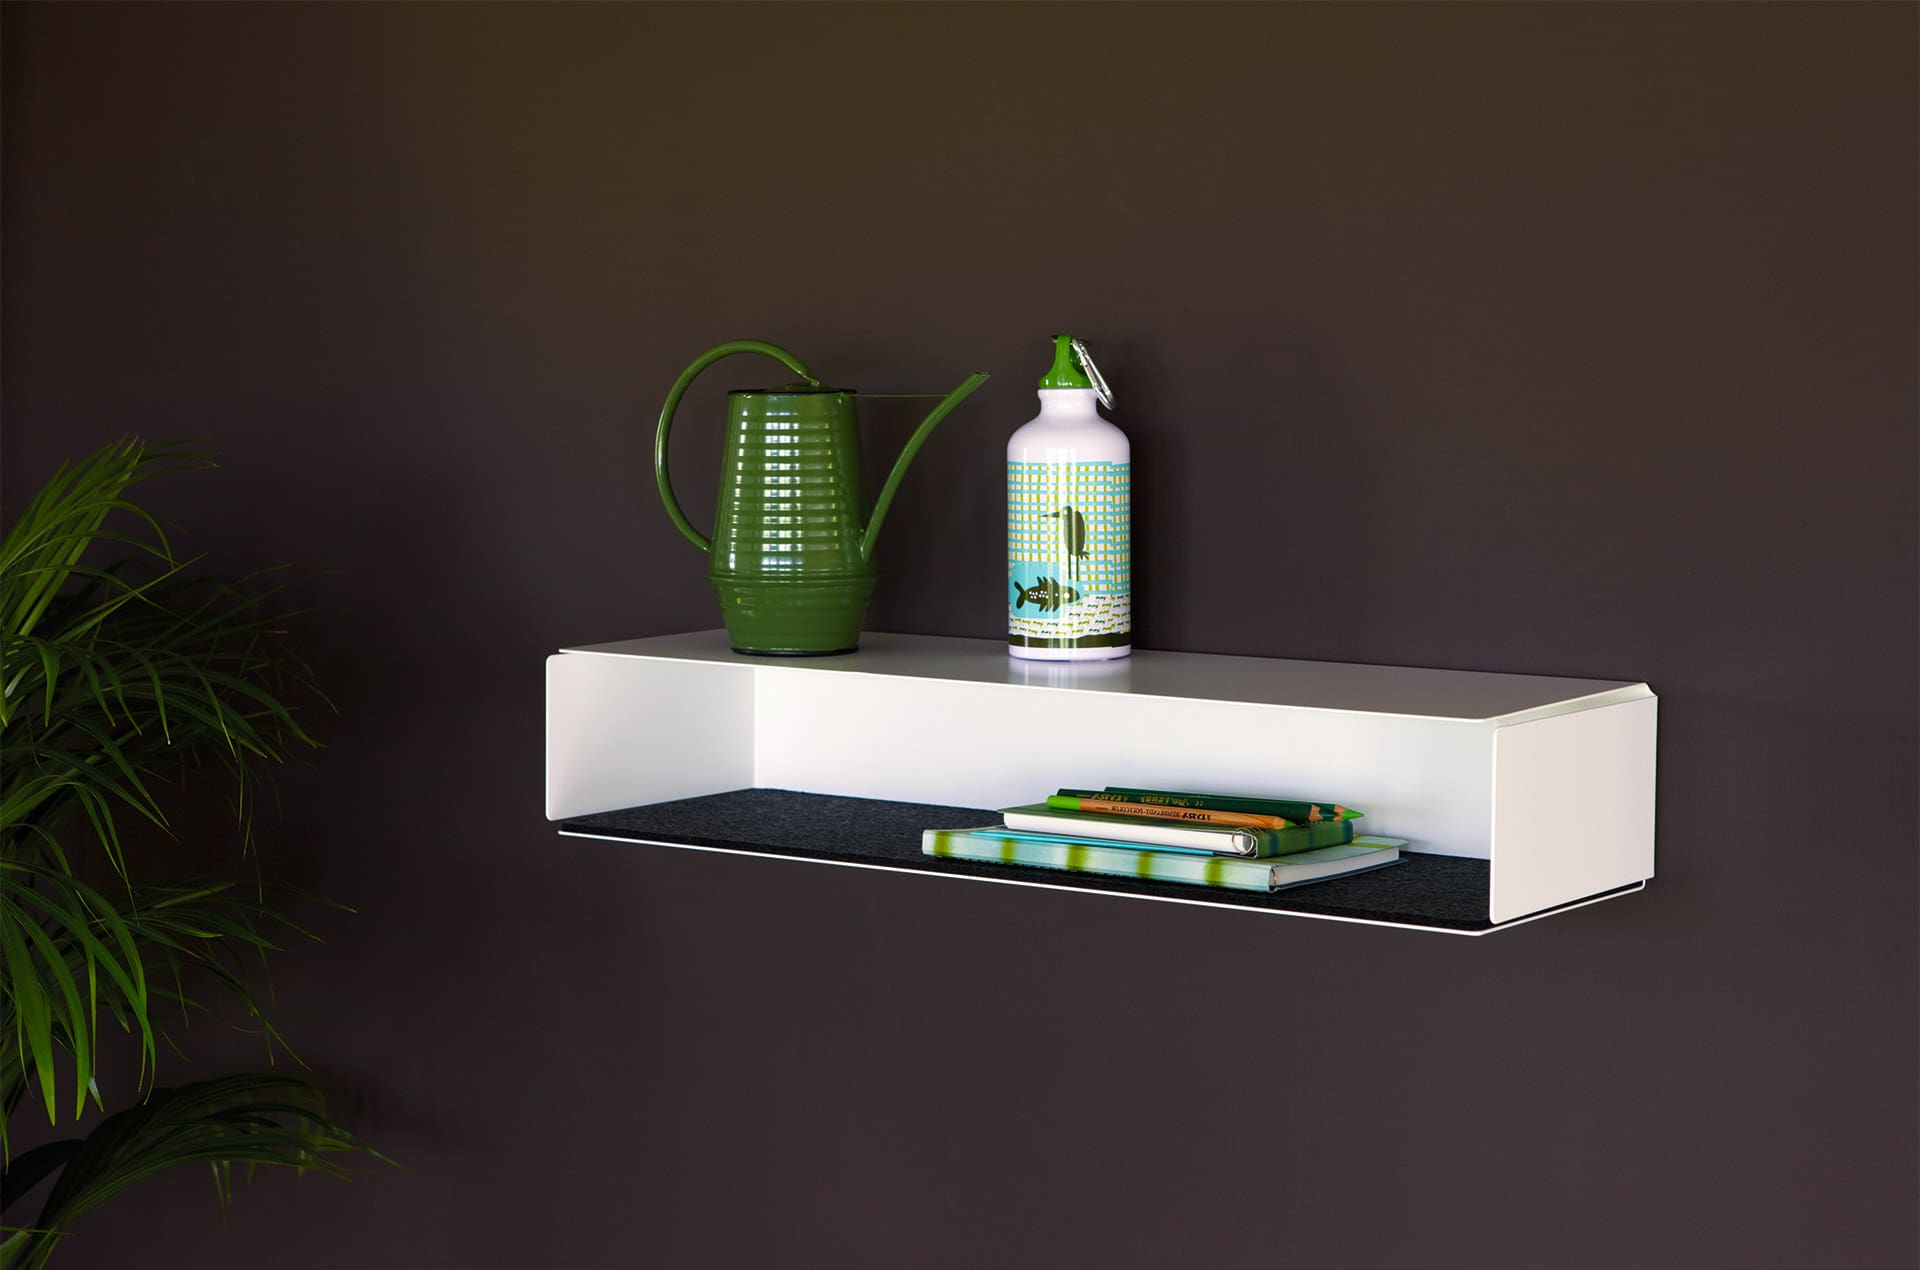 Etagère murale Side-Box blanc-feutre noir by Slawinski-PARIDEO design durable